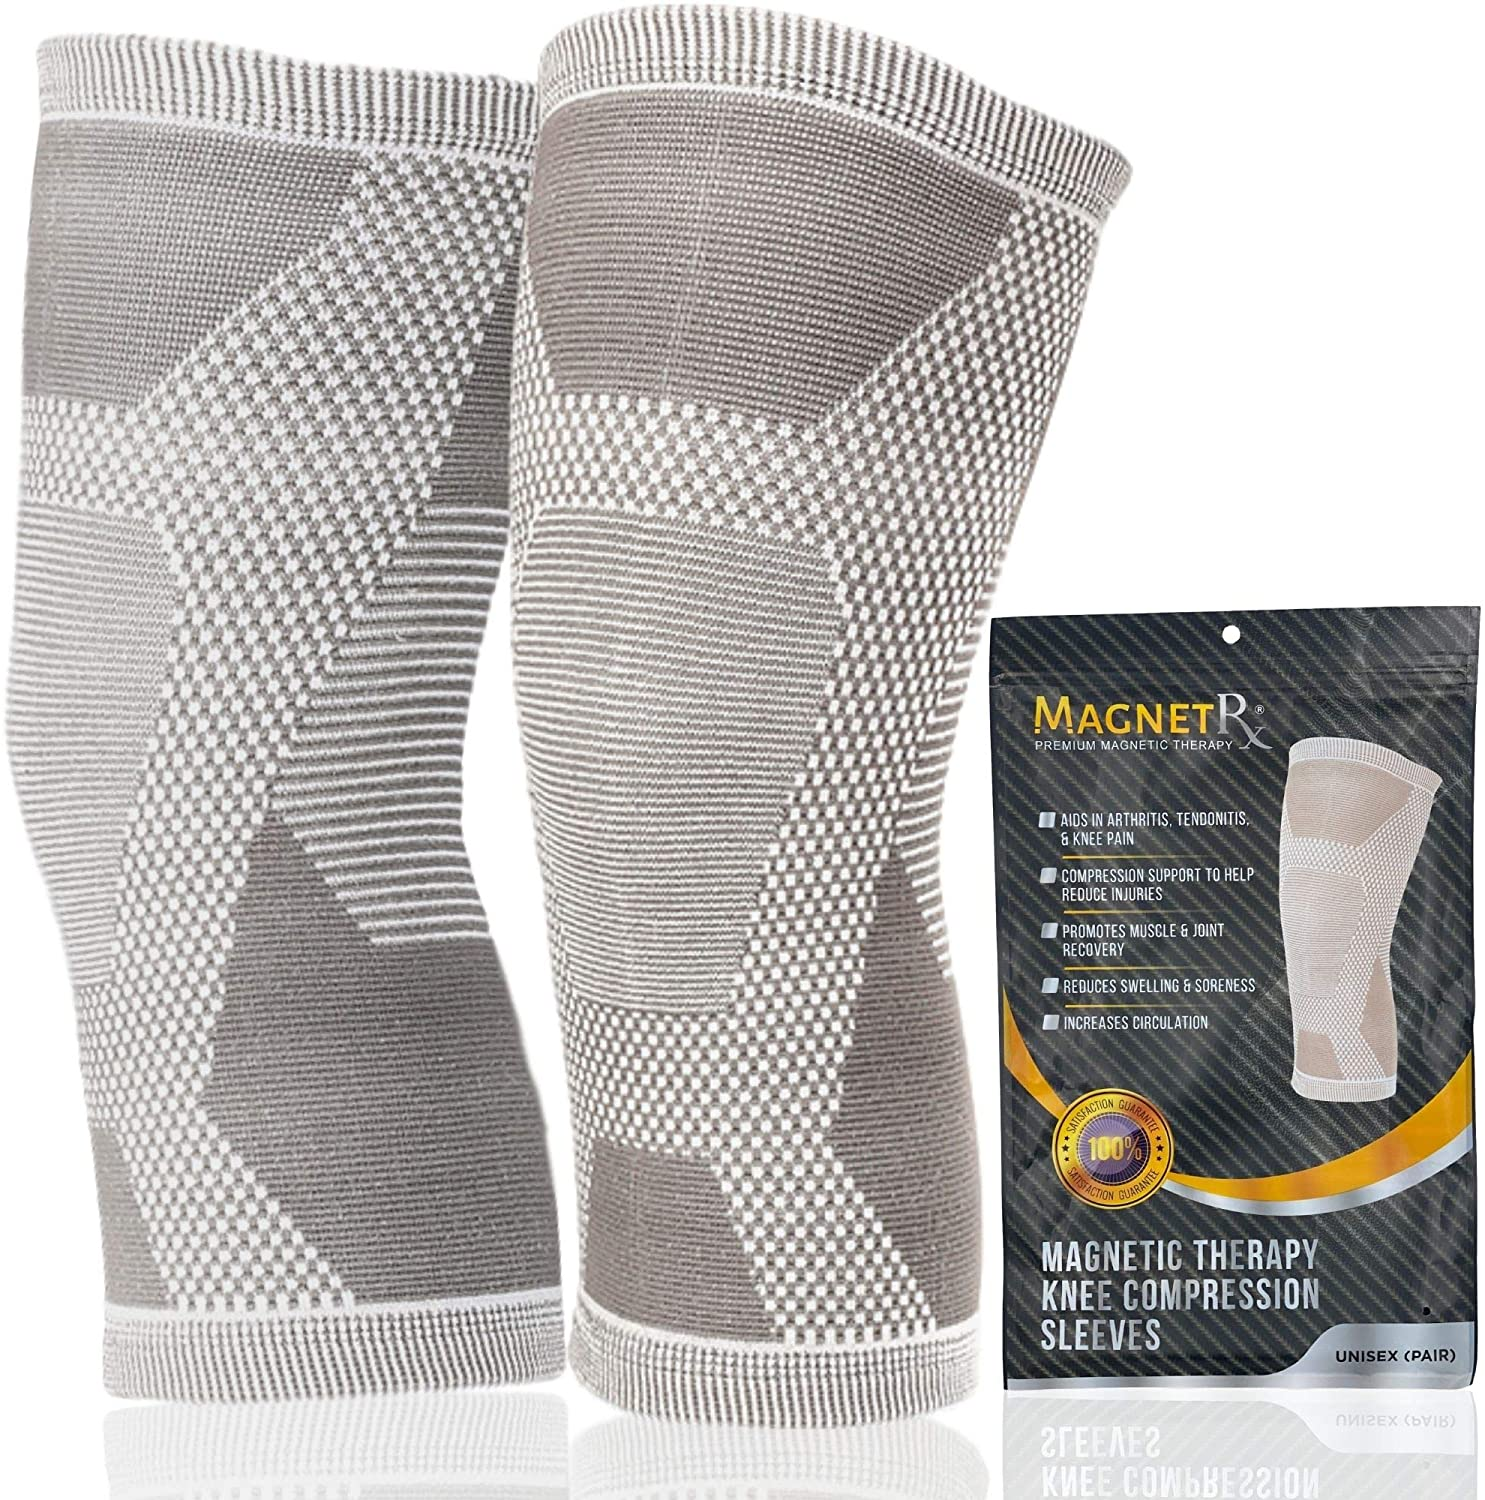 MagnetRX® Magnetic Therapy Knee Compression Sleeve - (2-Pack) Knee Support with Magnets for Knee Pain & Recovery - Magnet Therapy Knee Brace Support (Grey, Large)